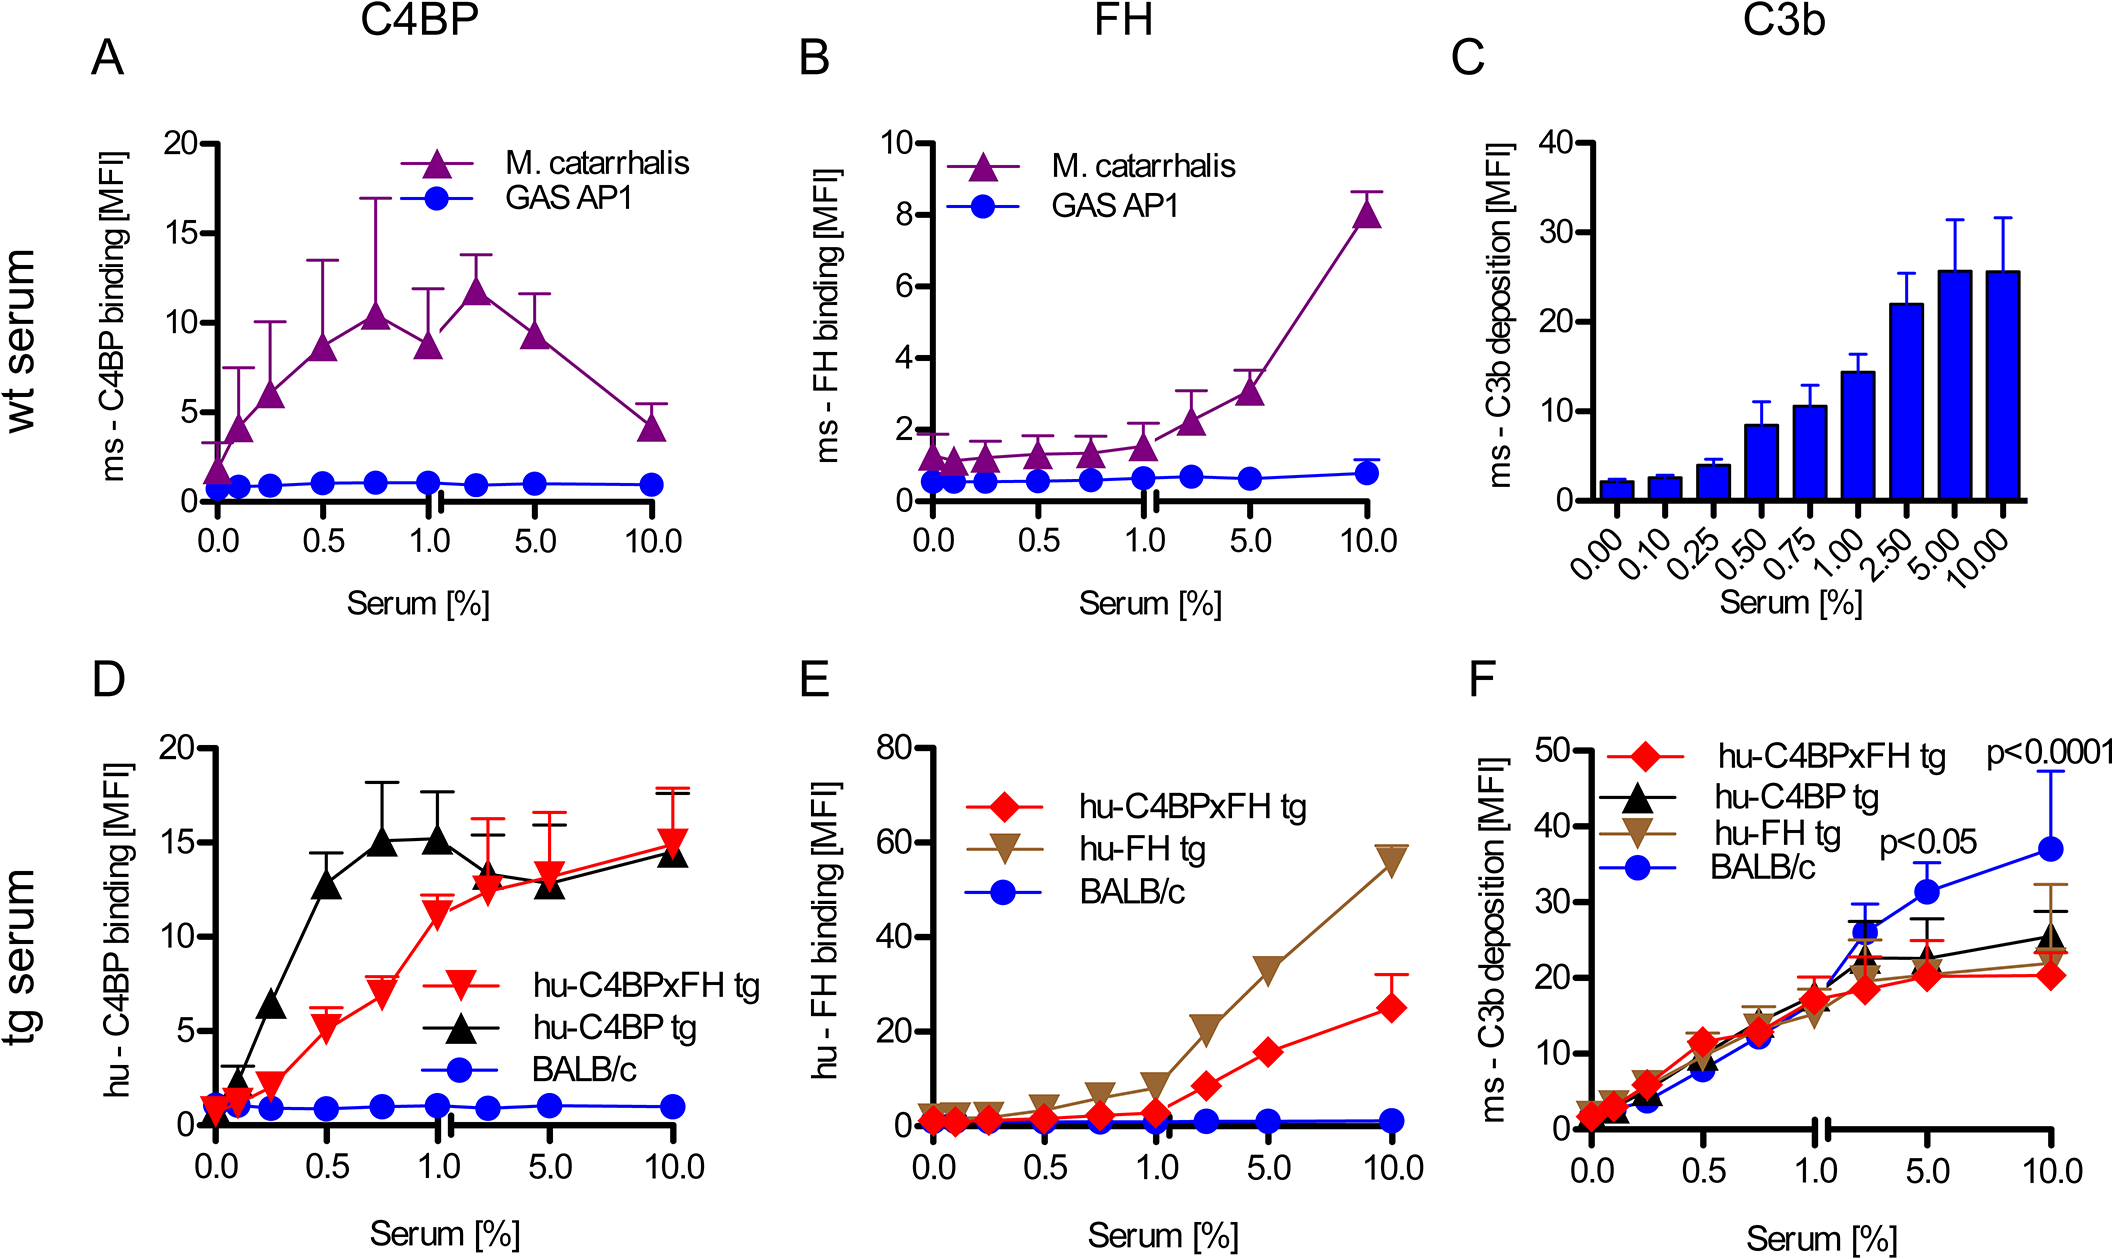 Human complement inhibitors decrease opsonization of GAS.